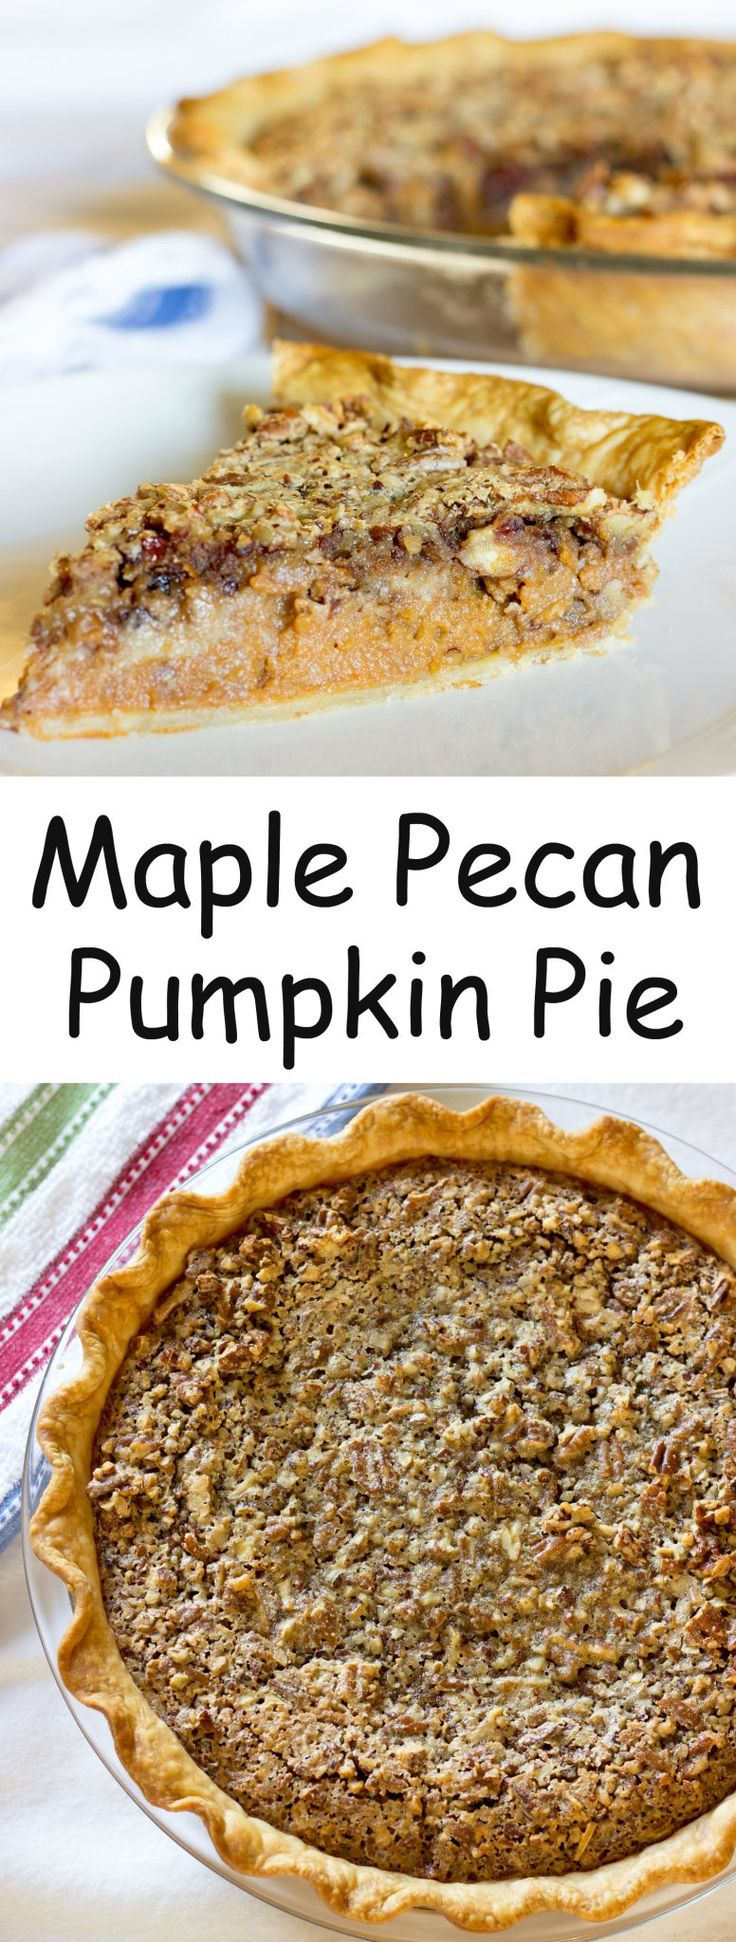 Maple Pecan Pumpkin Pie - A layer of pumpkin pie on bottom and a layer of pecan pie on top all with a sweet hint of maple syrup.